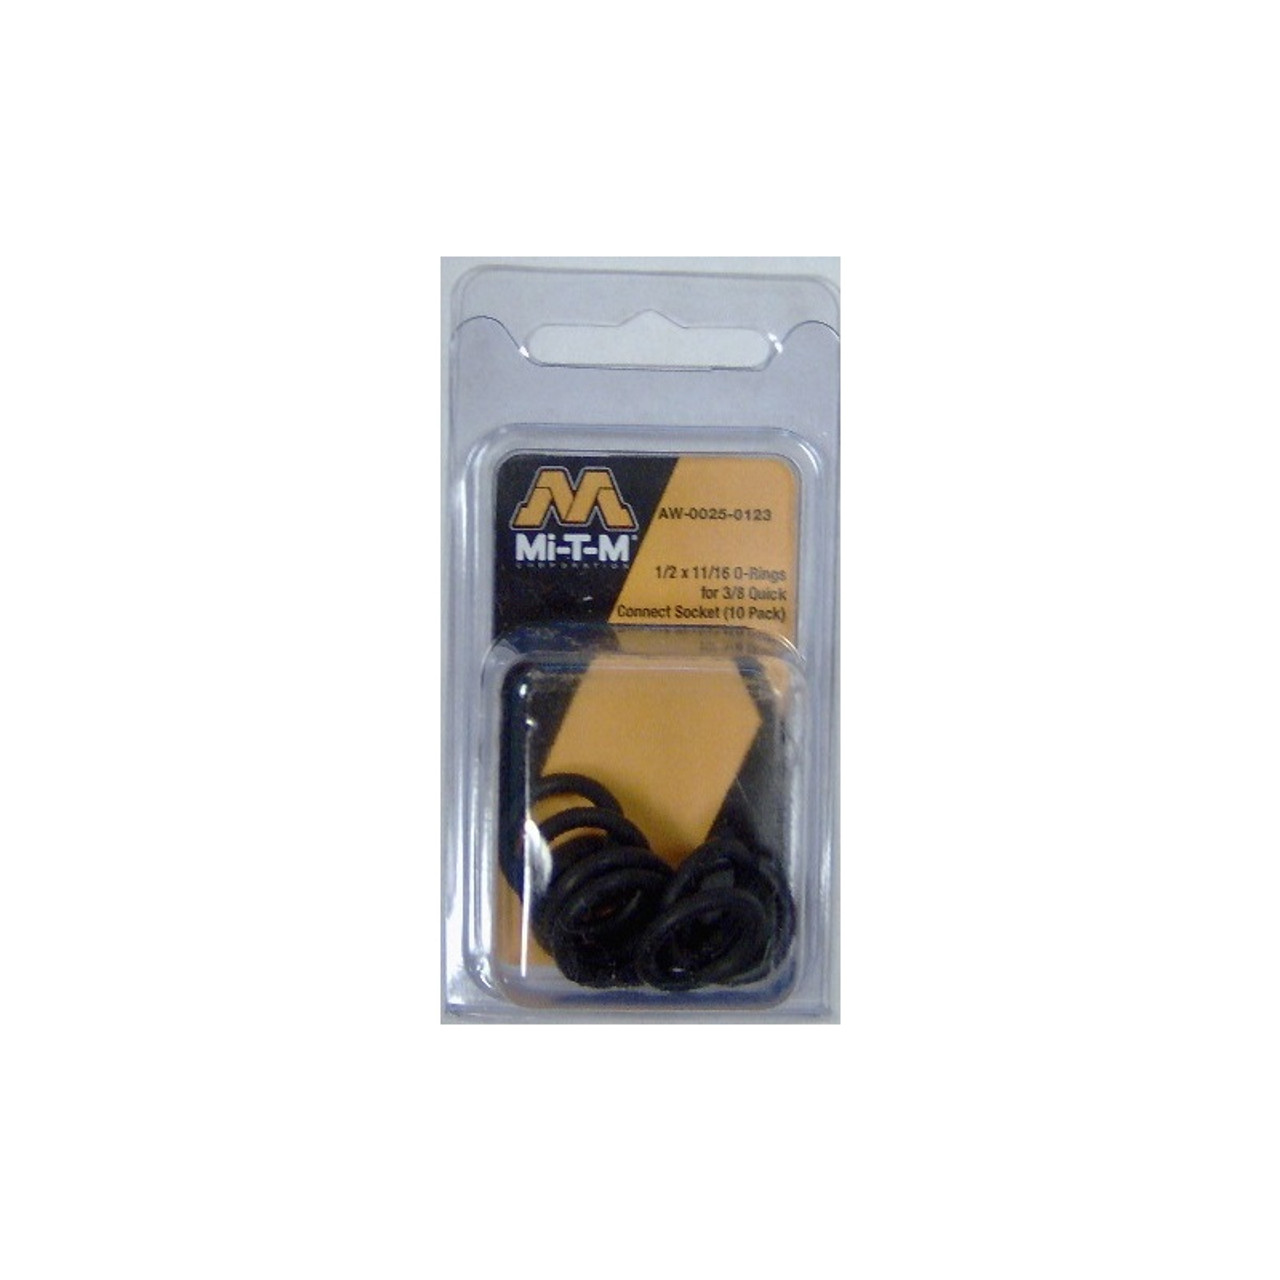 Mi-T-M Pressure Washer O-rings x 10 AW-0025-0123 AW00250123